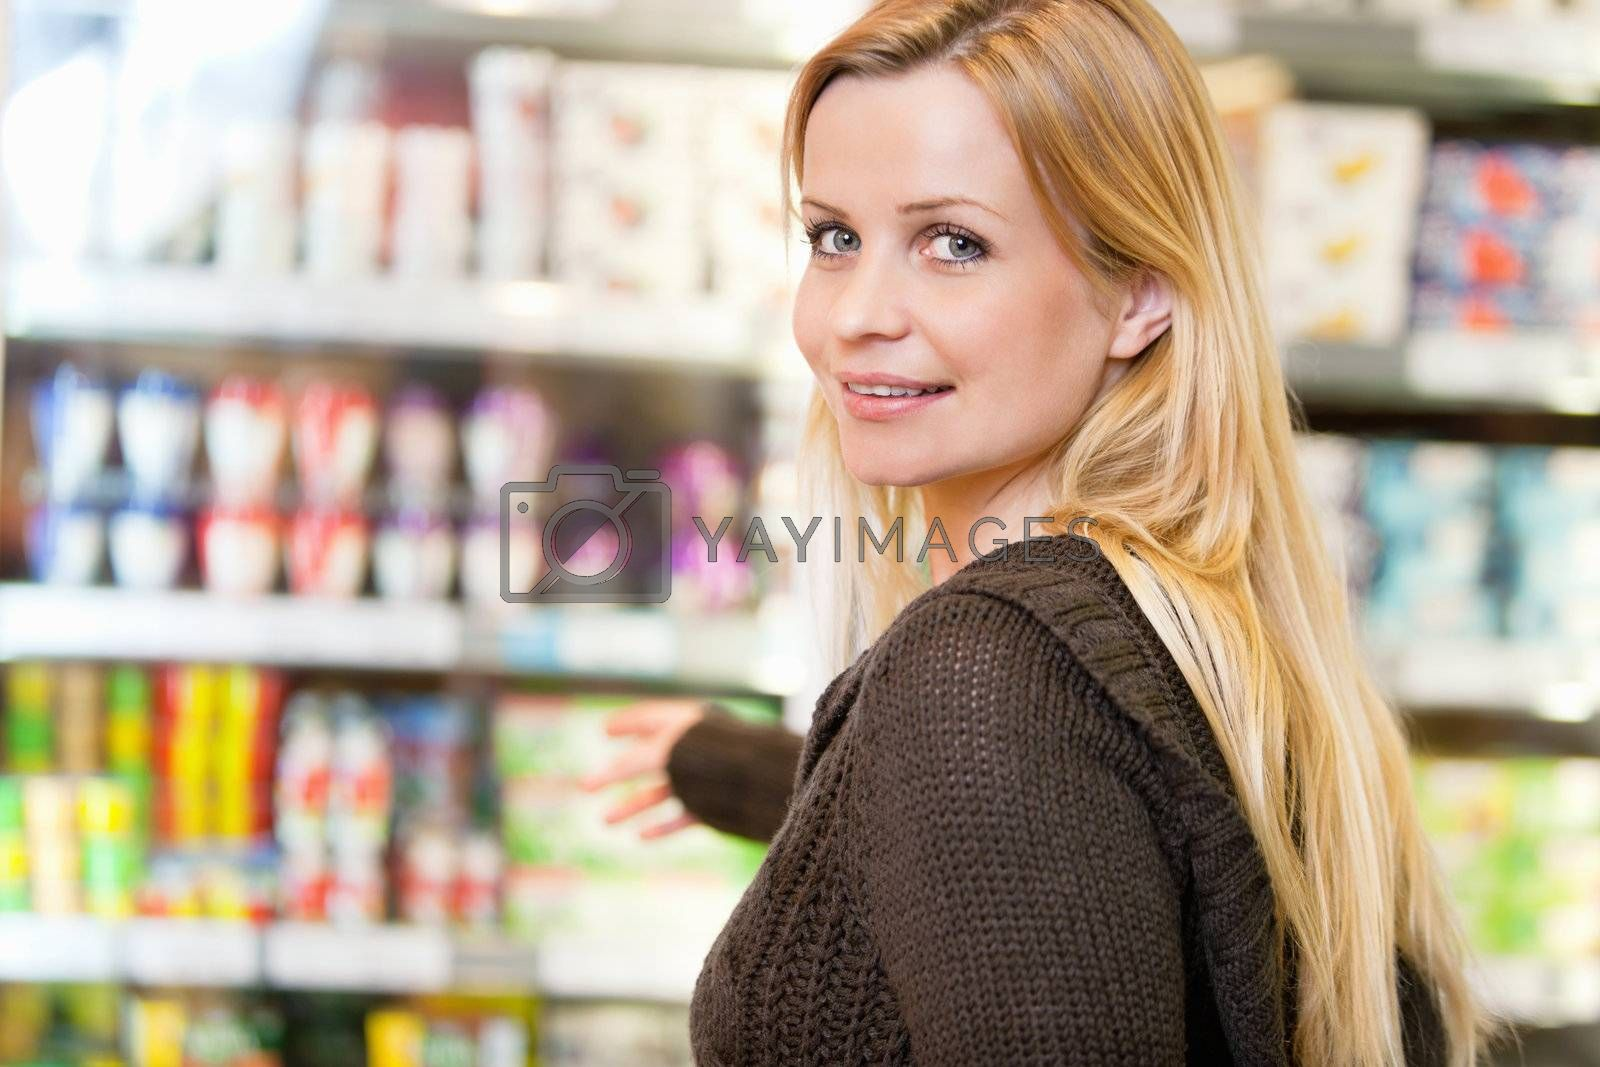 Close-up of smiling woman reaching for products arranged in refrigerator and looking at camera